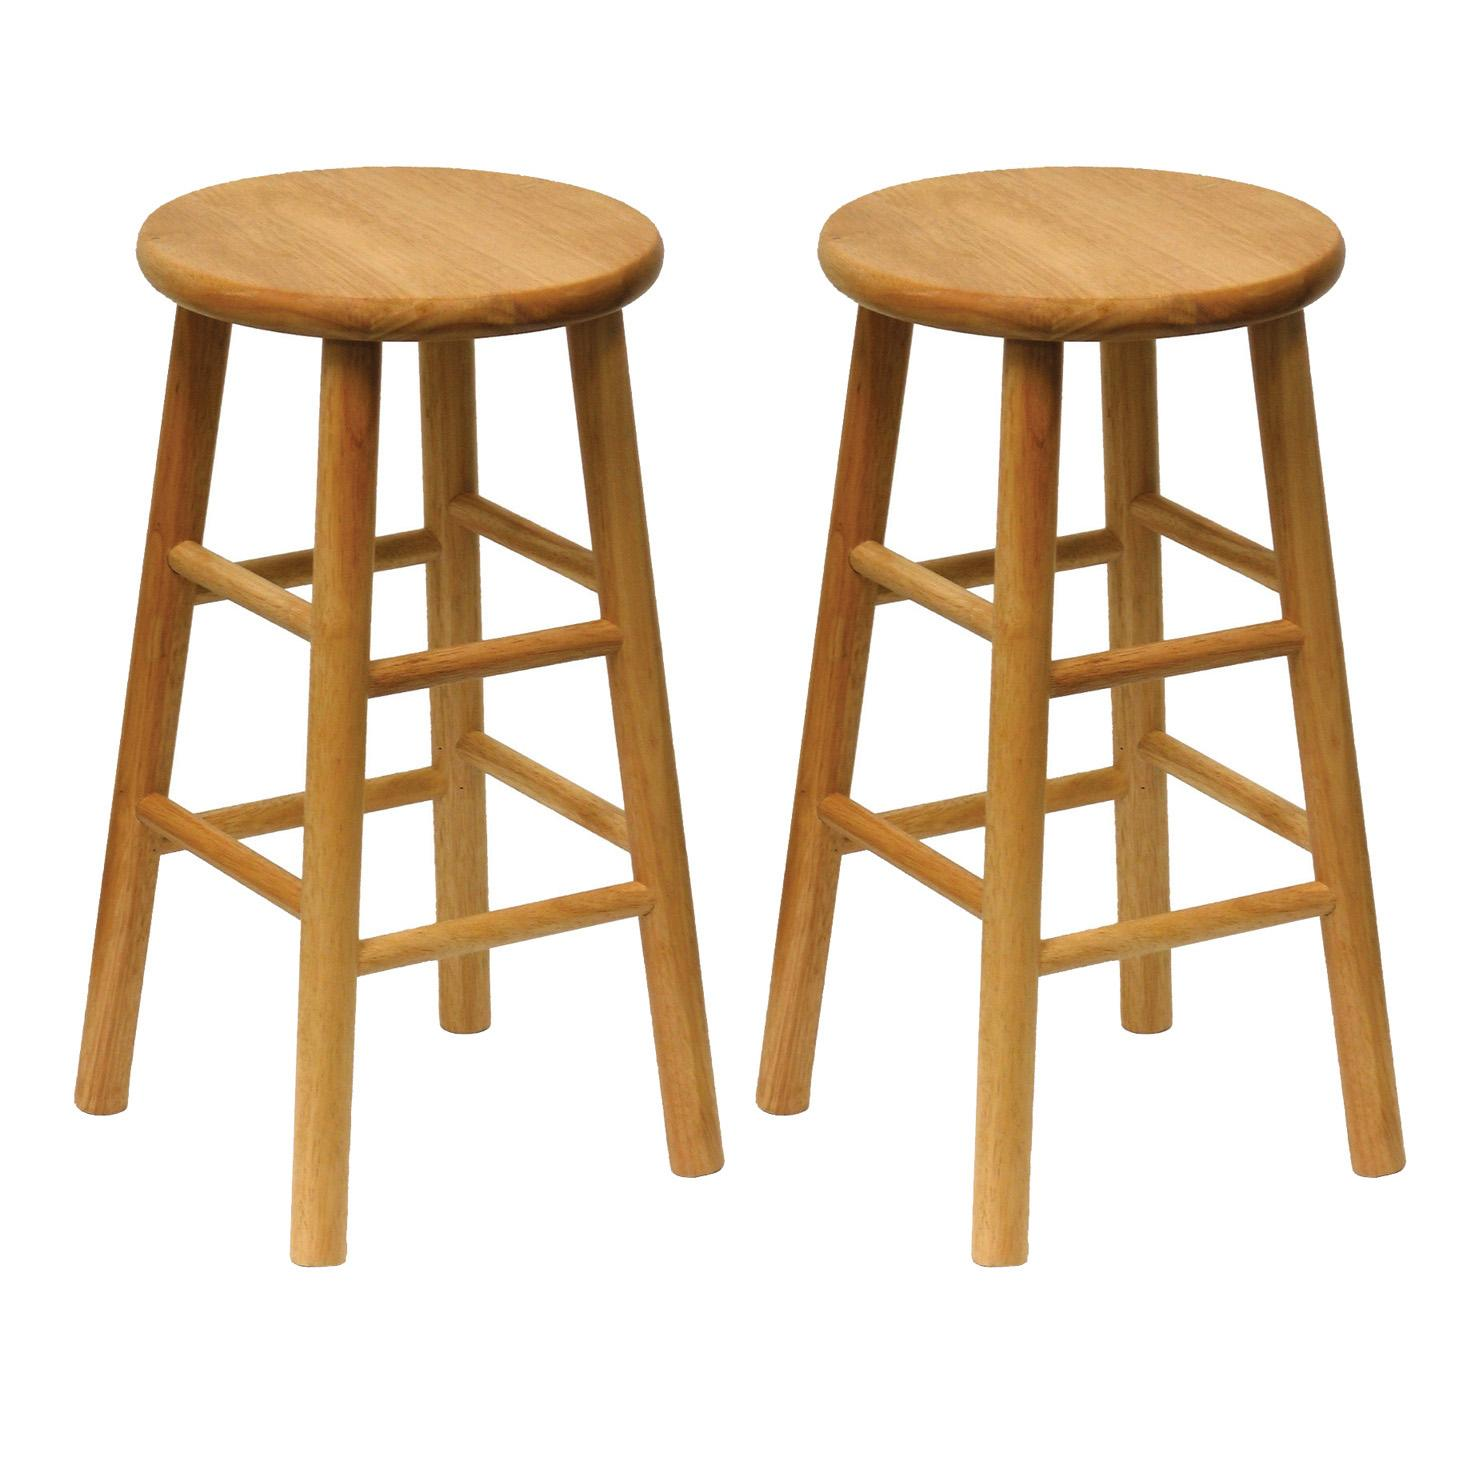 Winsome 81784 tabby stool natural kitchen - Amazon bedroom chairs and stools ...